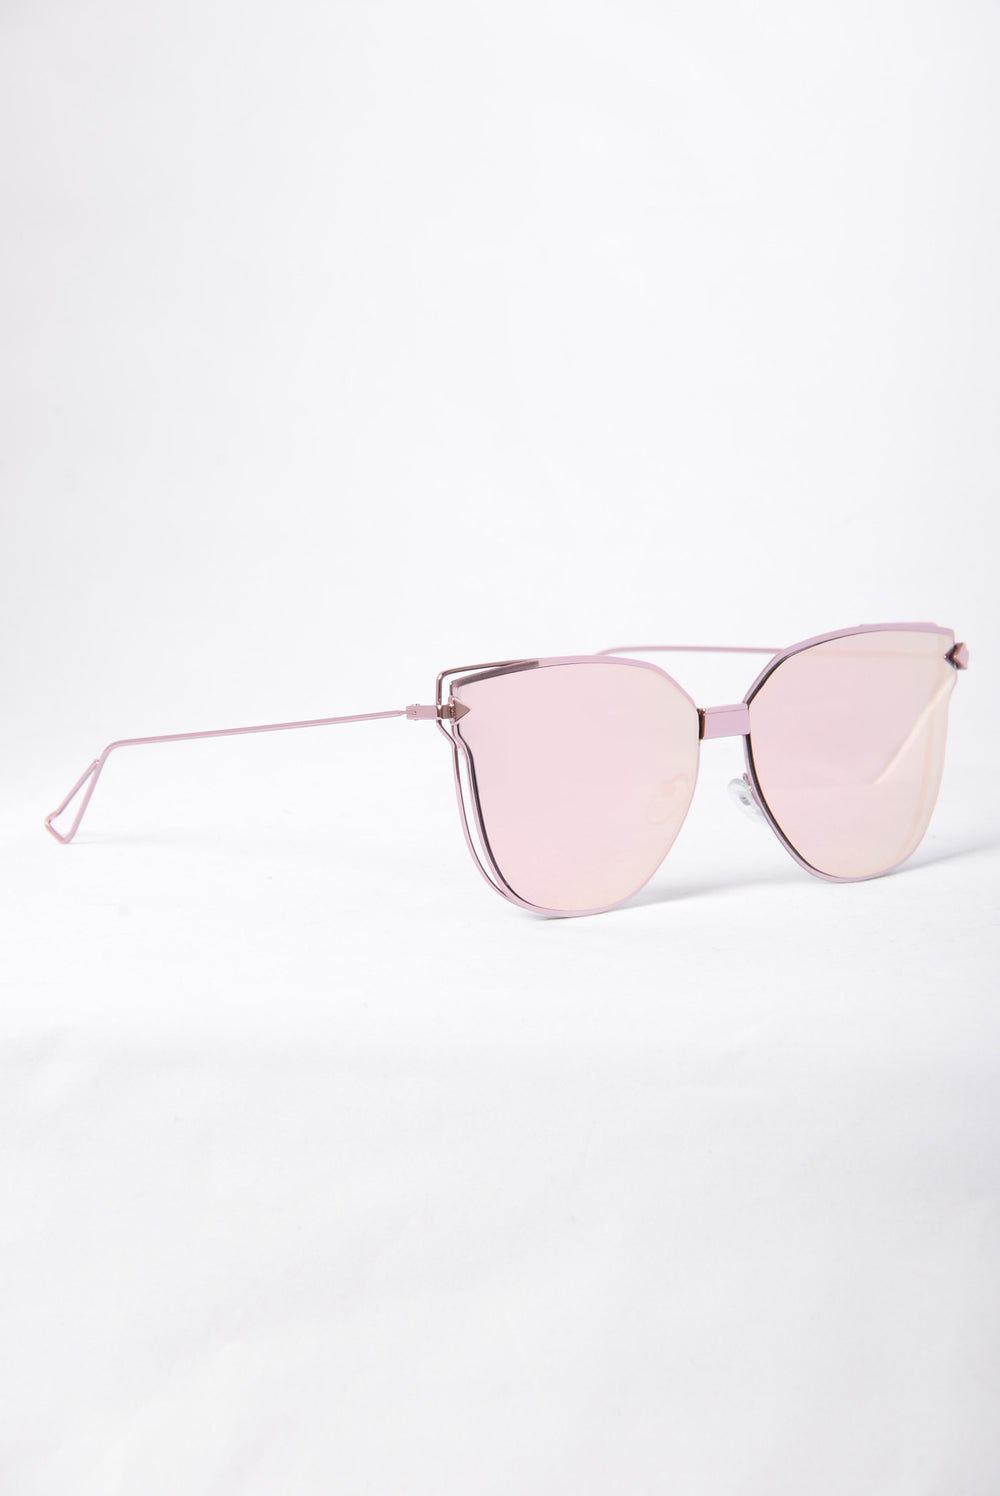 Colombia Sunglasses - Gold/Rose Gold